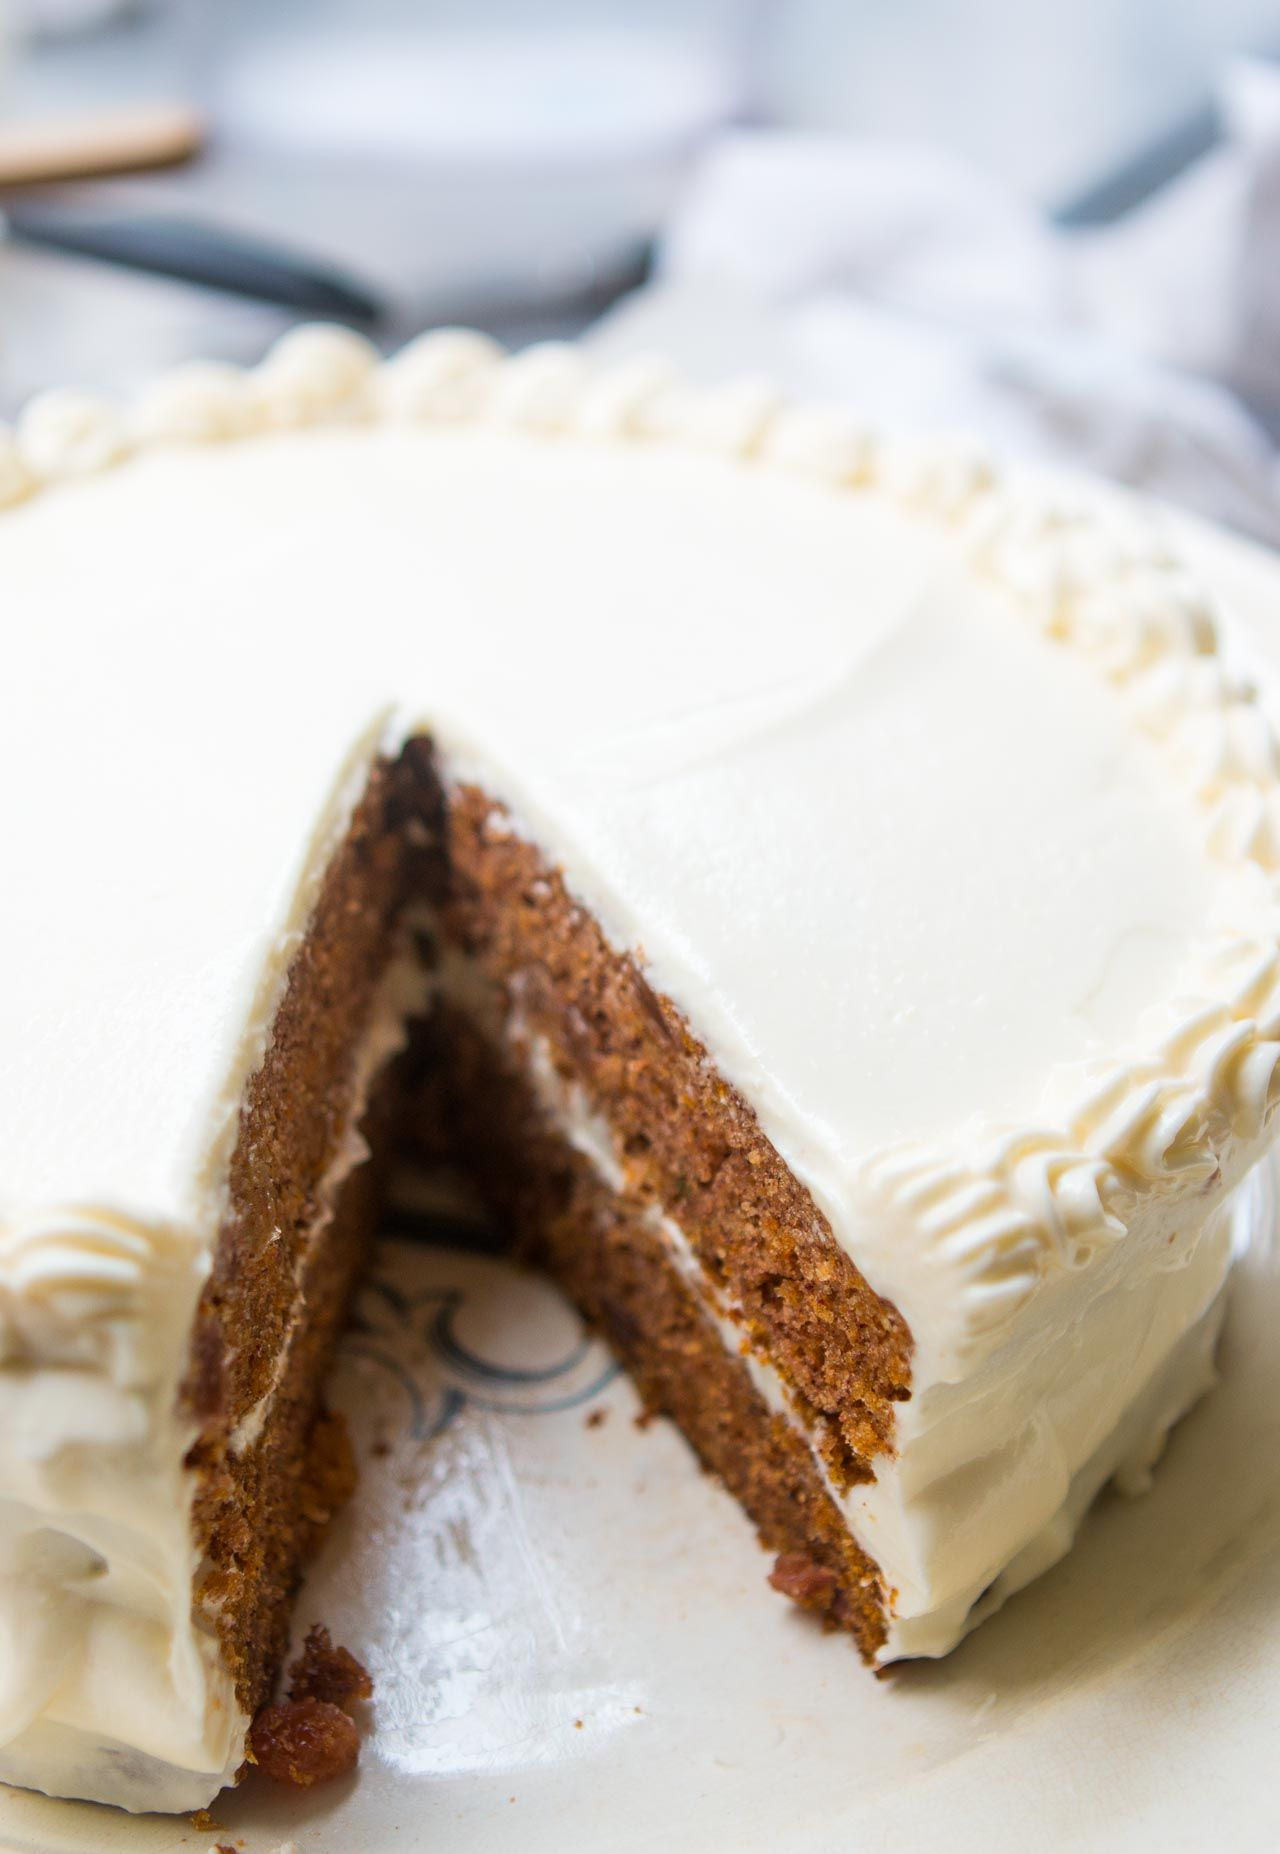 Carrot Cake With Cream Cheese Frosting Recipe Cake Recipes Carrot Cake Cake